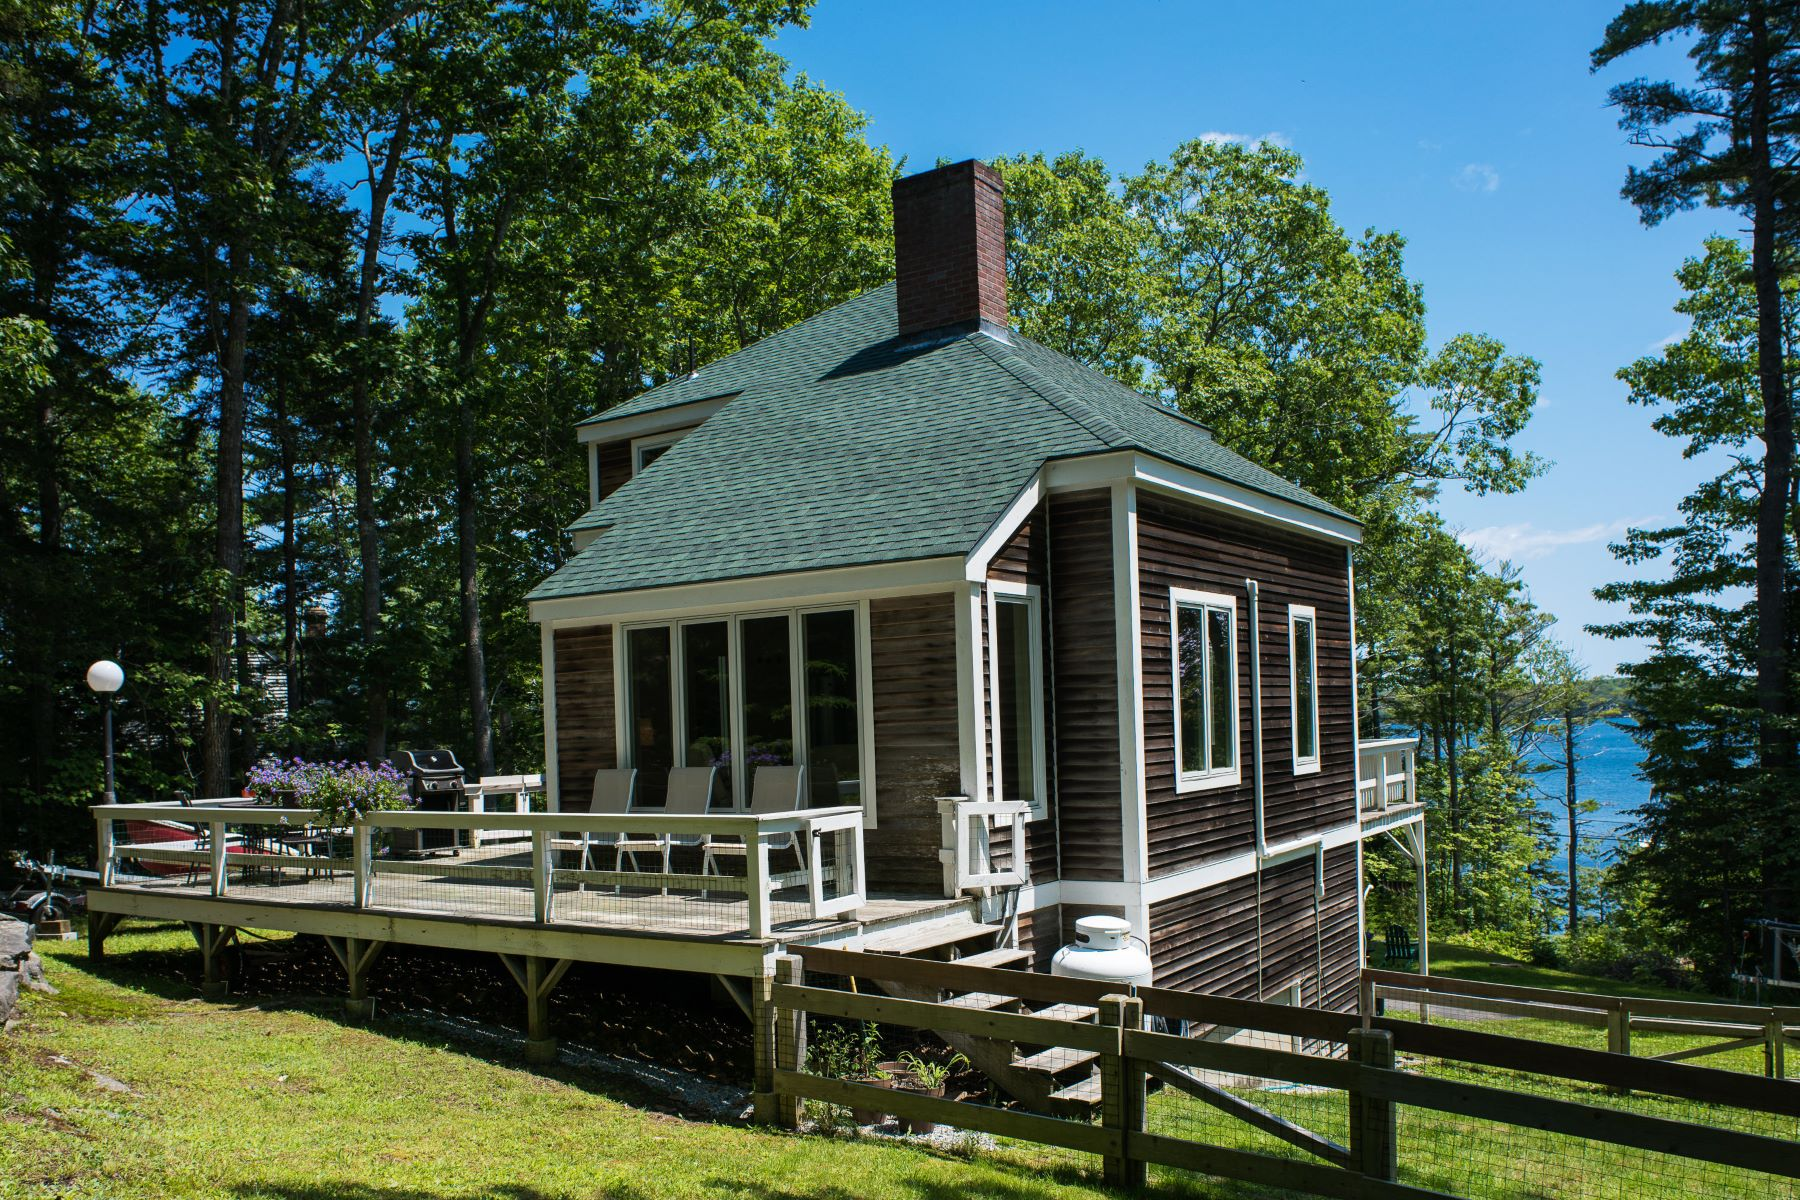 Single Family Homes for Sale at 43 Birch Road Boothbay Harbor, Maine 04538 United States